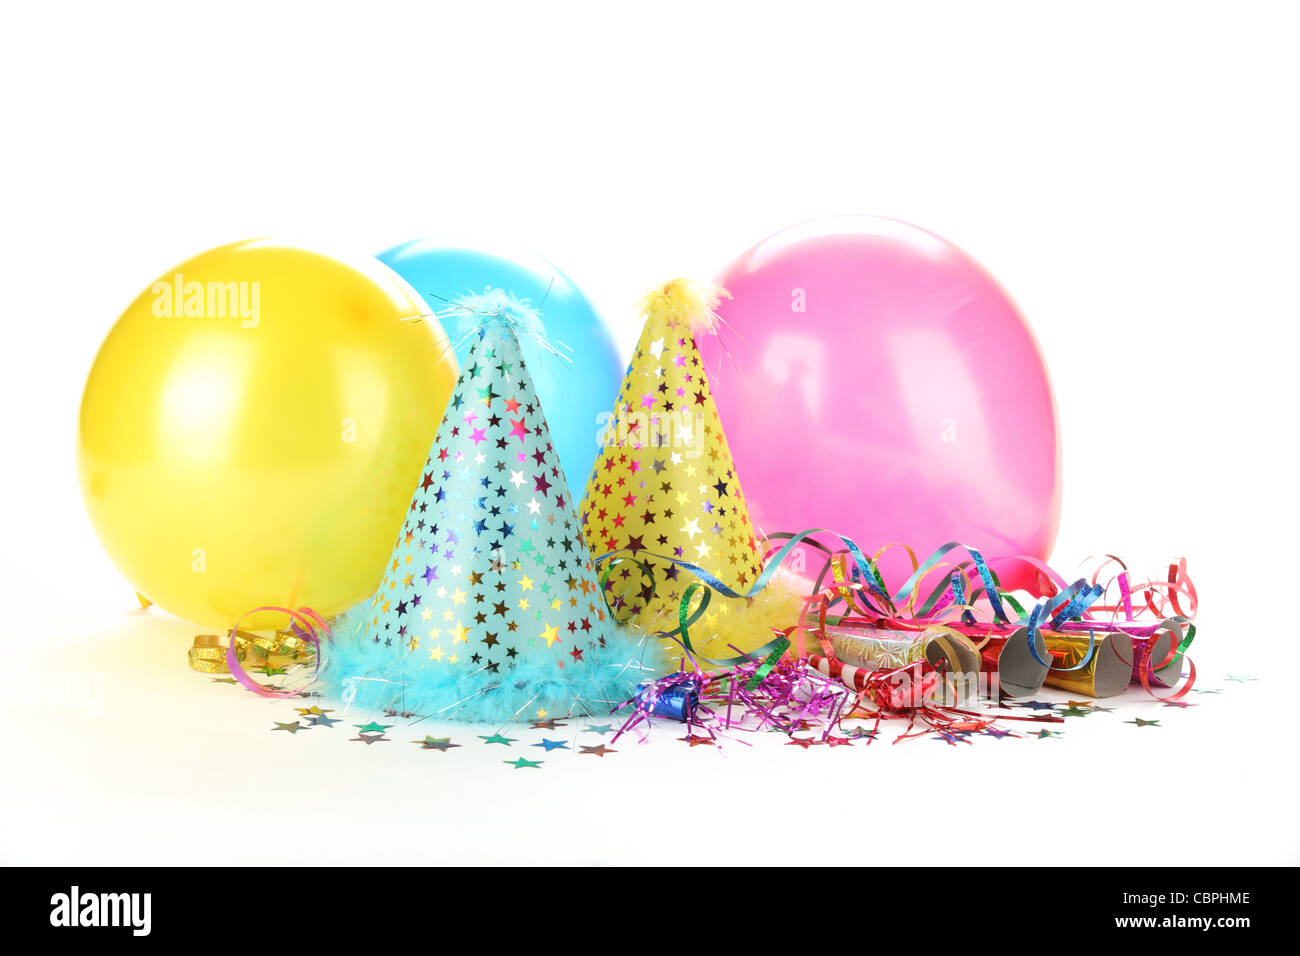 New Year's Party Decoration - Stock Image